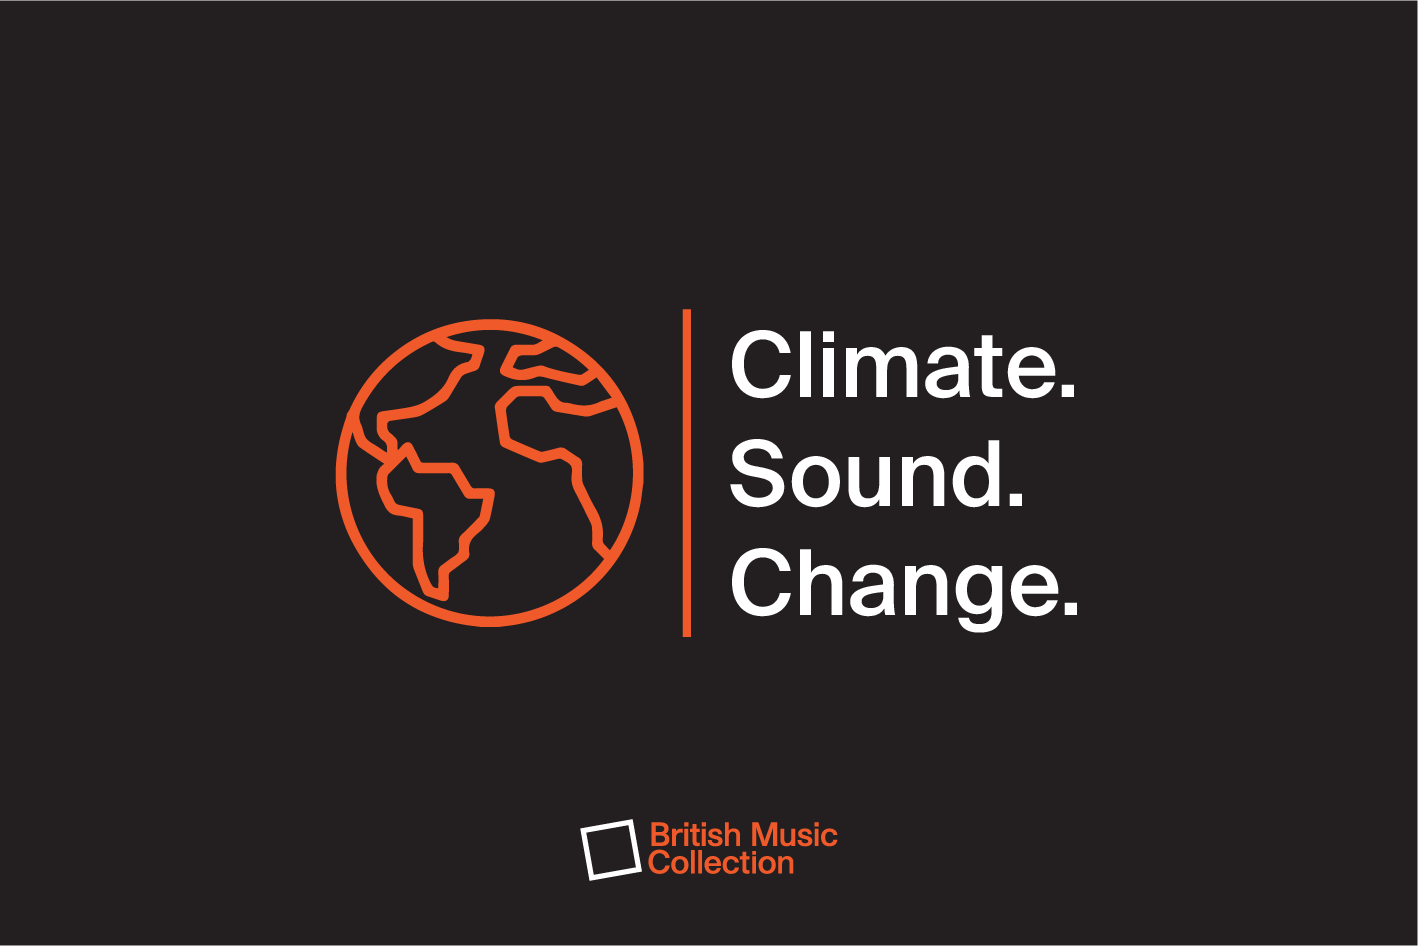 Orange silhouette of globe on black background with orange vertical line to the right. Text to the right reading 'Climate. Sound. Change.'